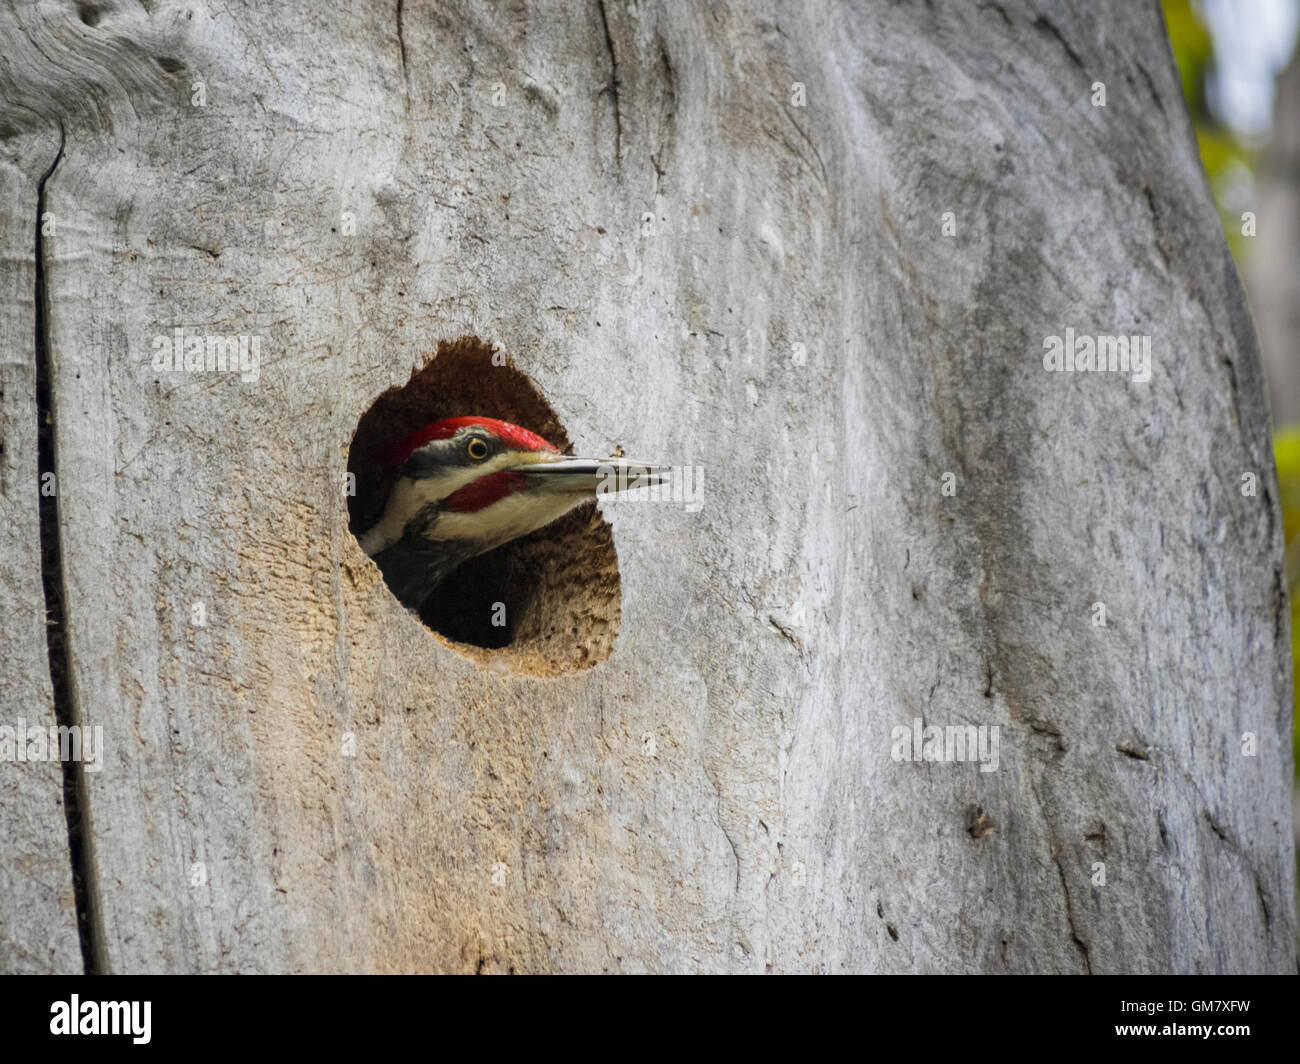 Pilated woodpecker peaking out of nest - Stock Image